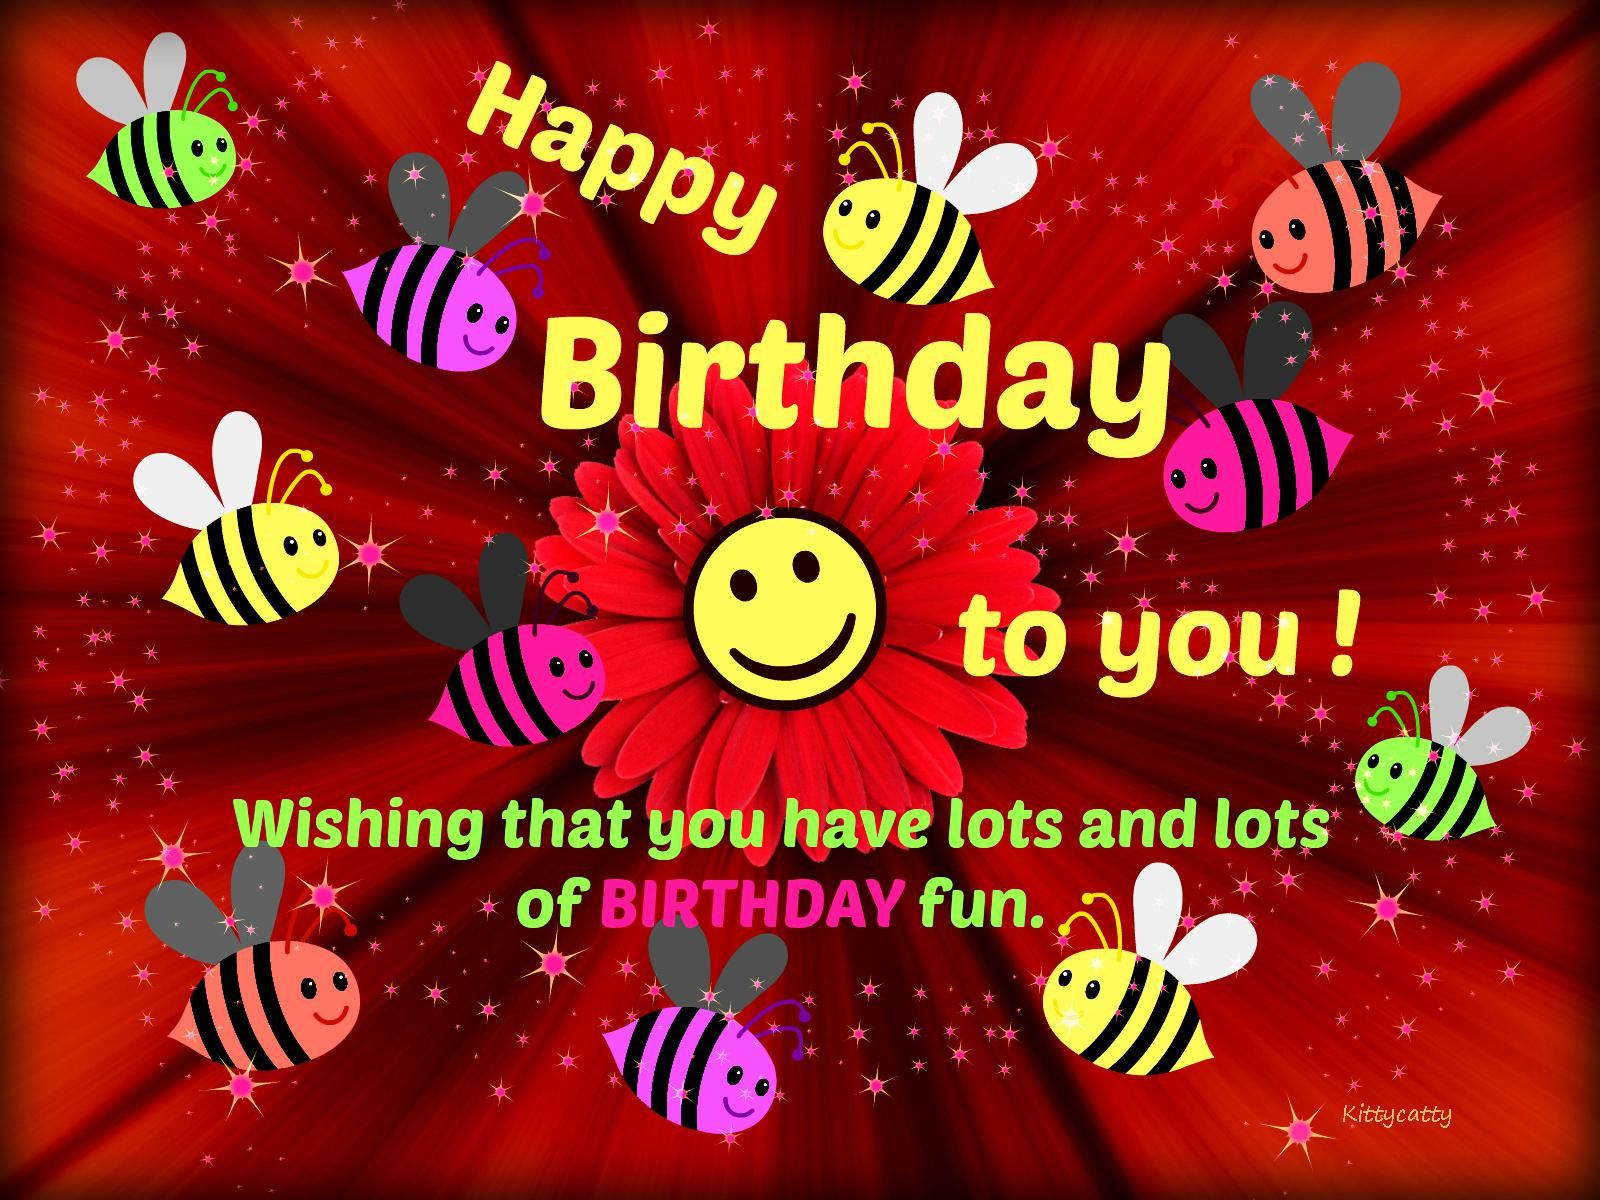 happy birthday to you images hd ; c79e89daaf402fe7464fa84c996b085b